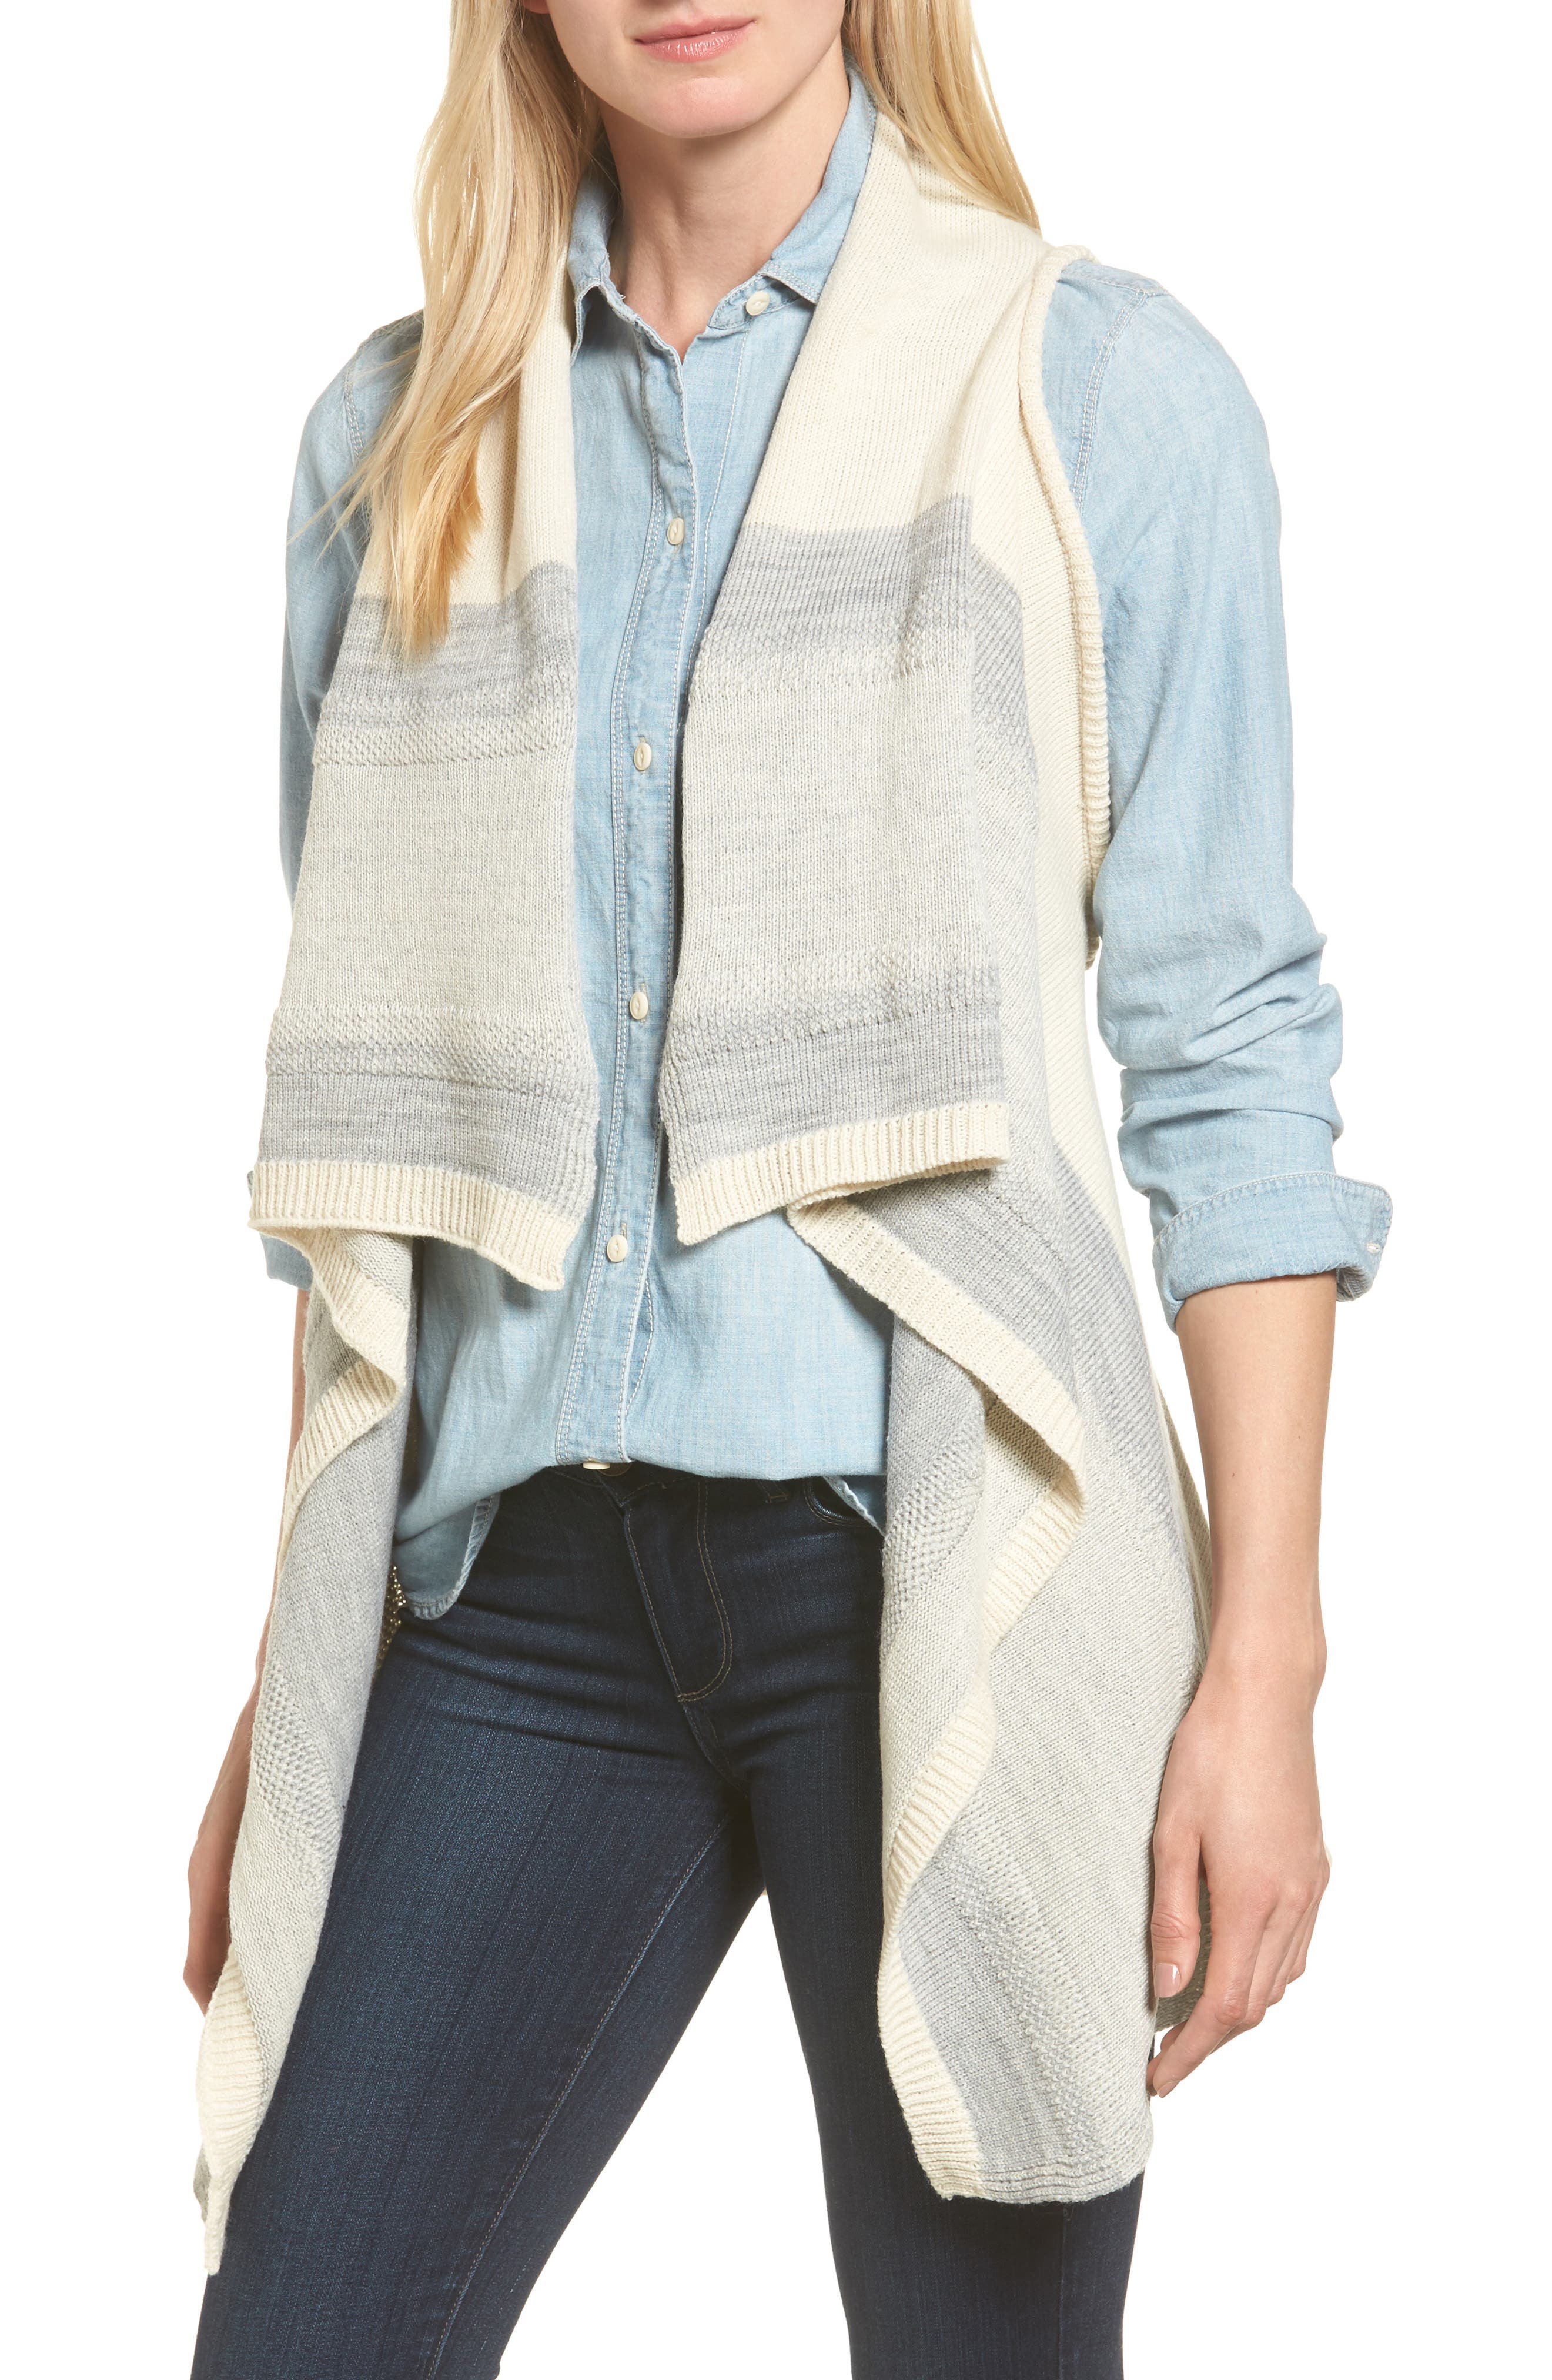 Faded Stripes Knit Vest,                             Main thumbnail 1, color,                             Off White